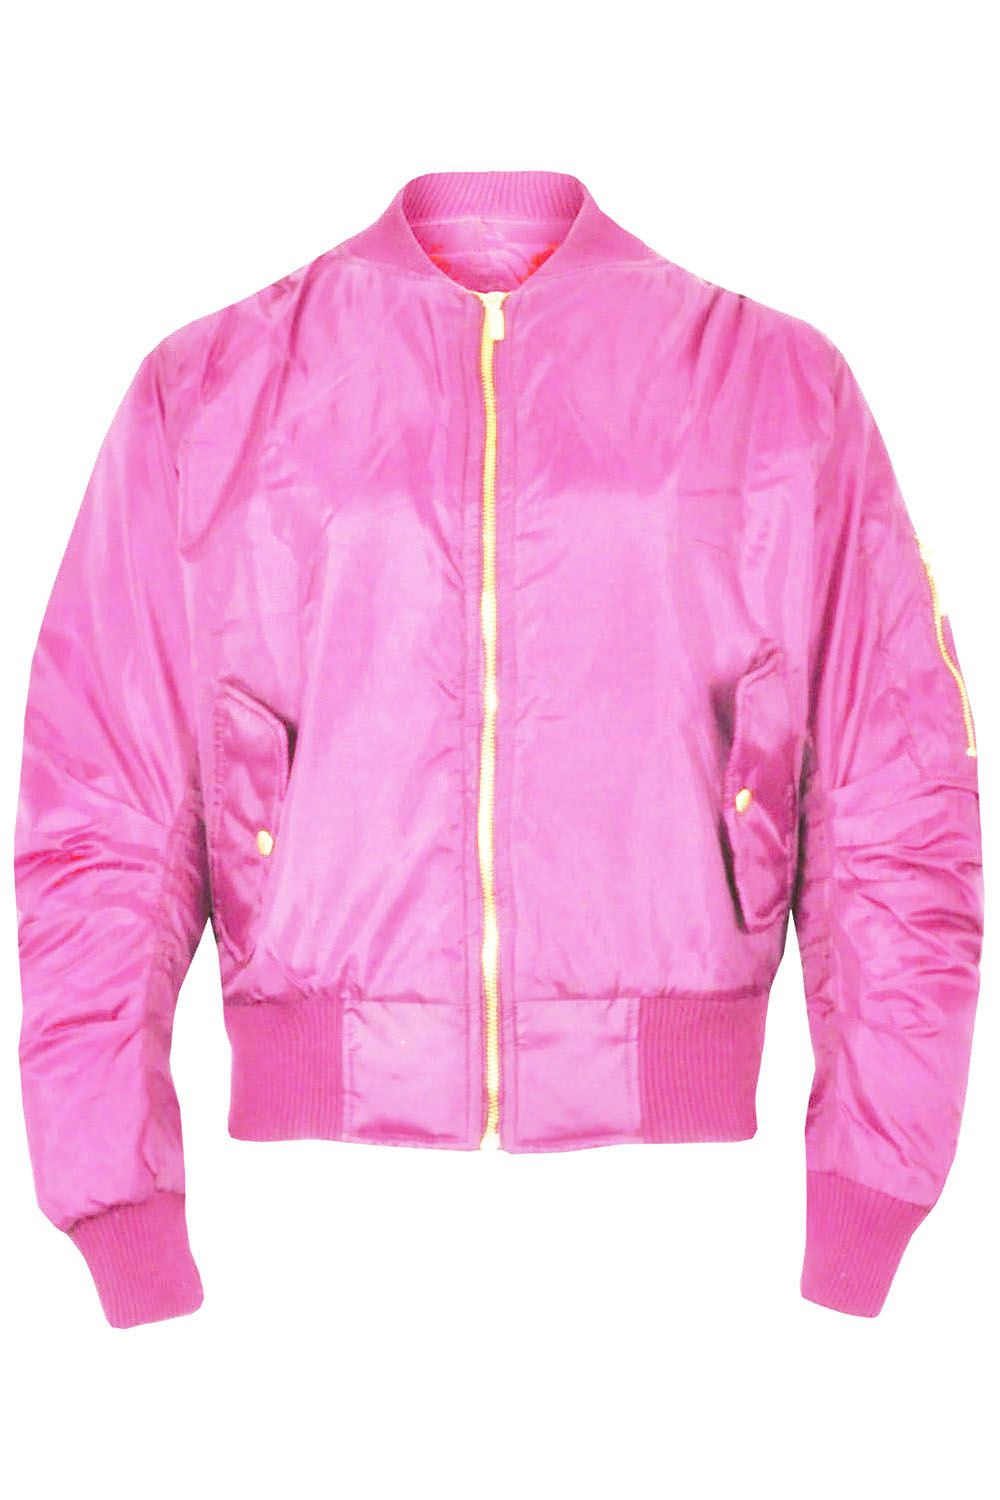 Find great deals on eBay for kids bomber jacket. Shop with confidence.